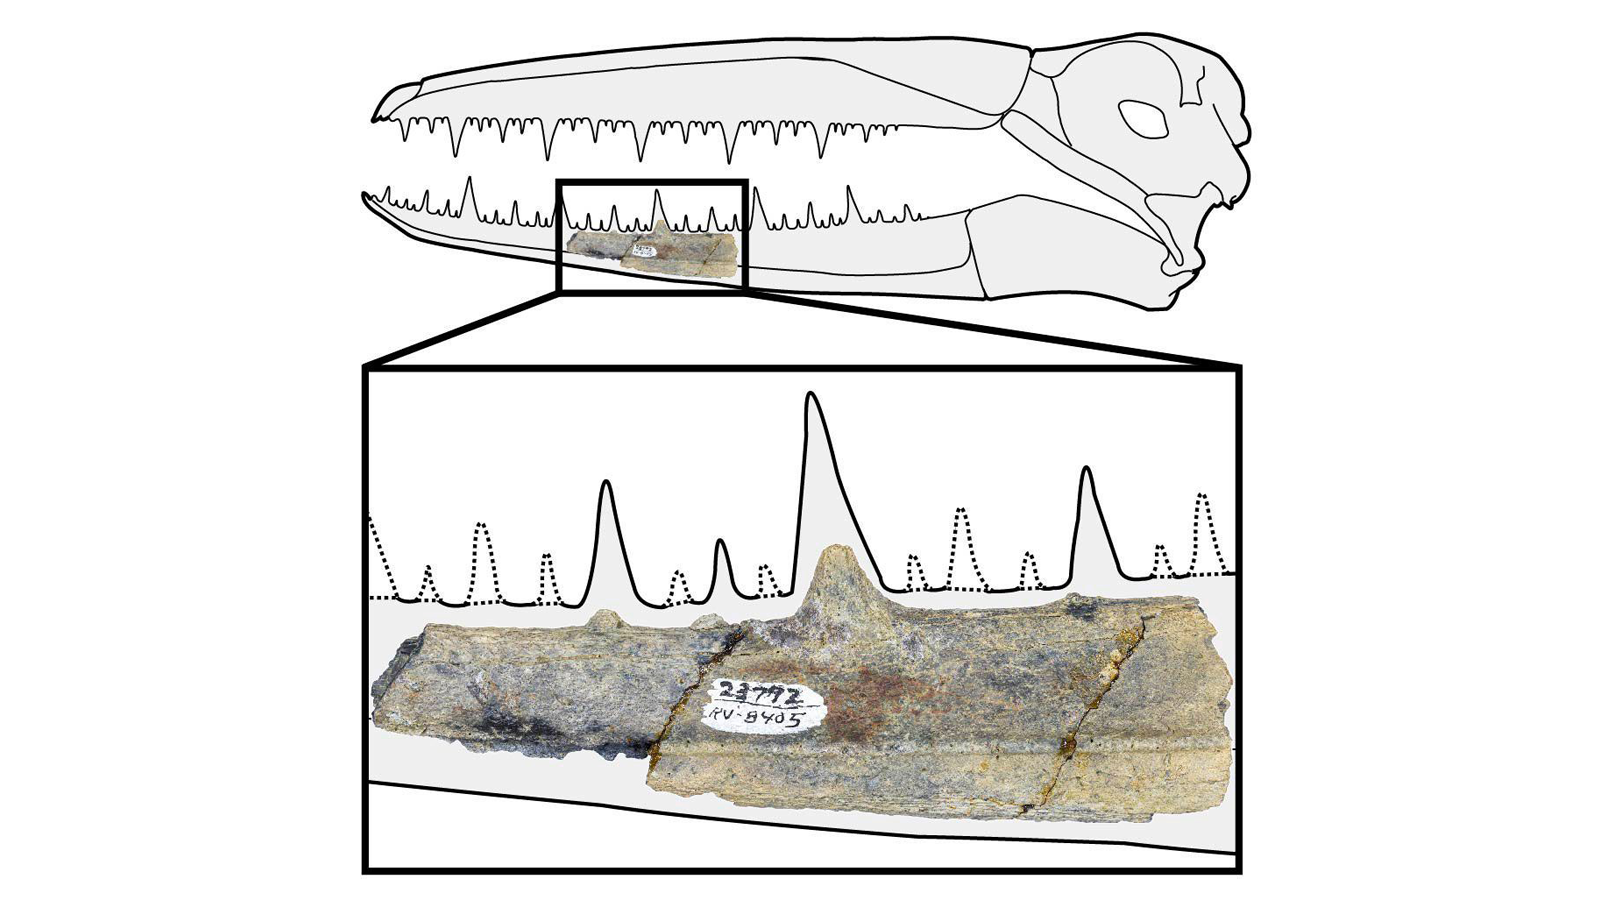 A pelagornithid's jaw bone was found in a rock formation laid down more than 37 million years ago.